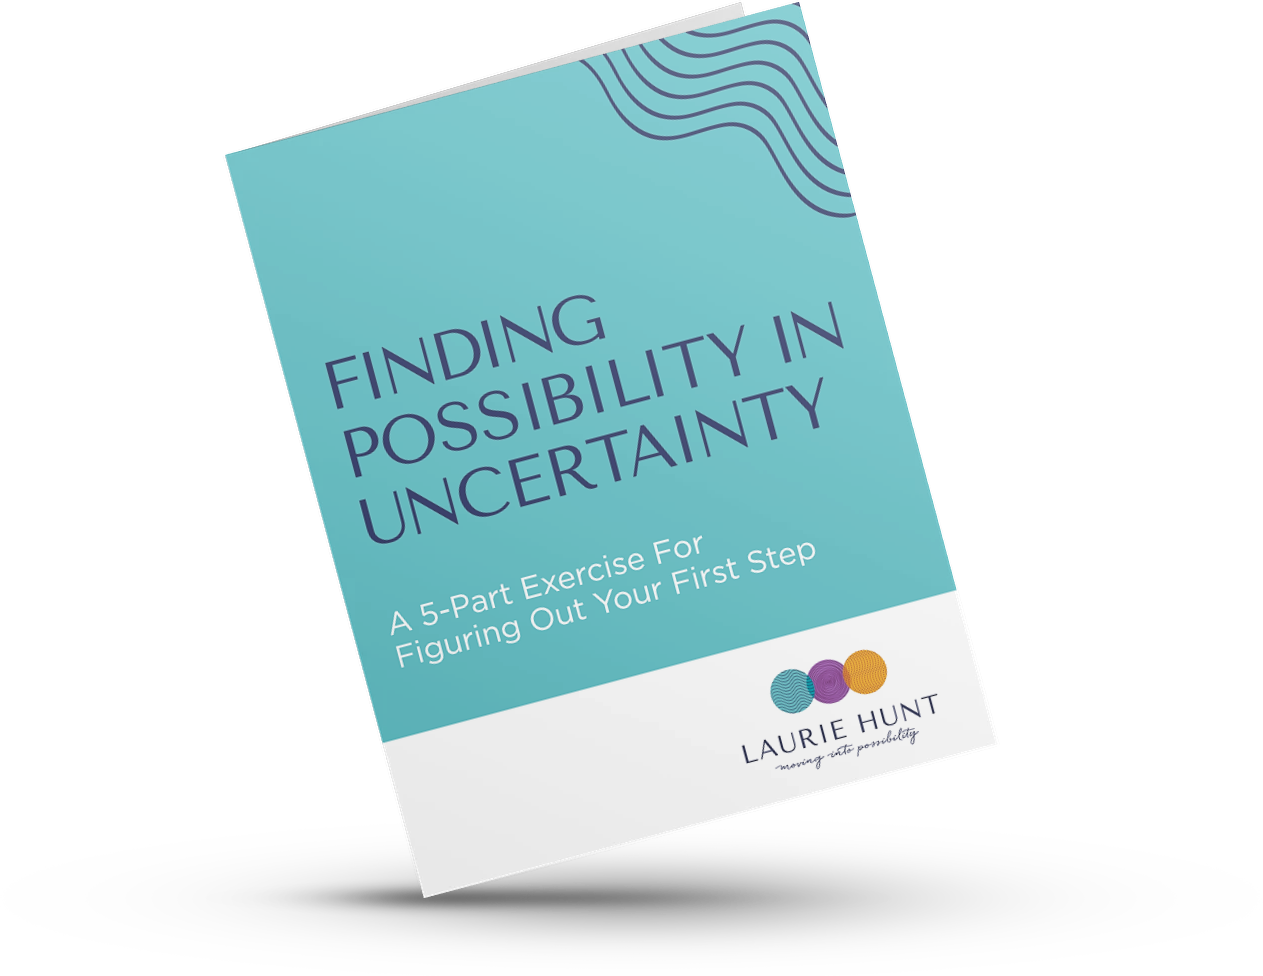 Finding Possibility In Uncertainty Mockup of Workbook